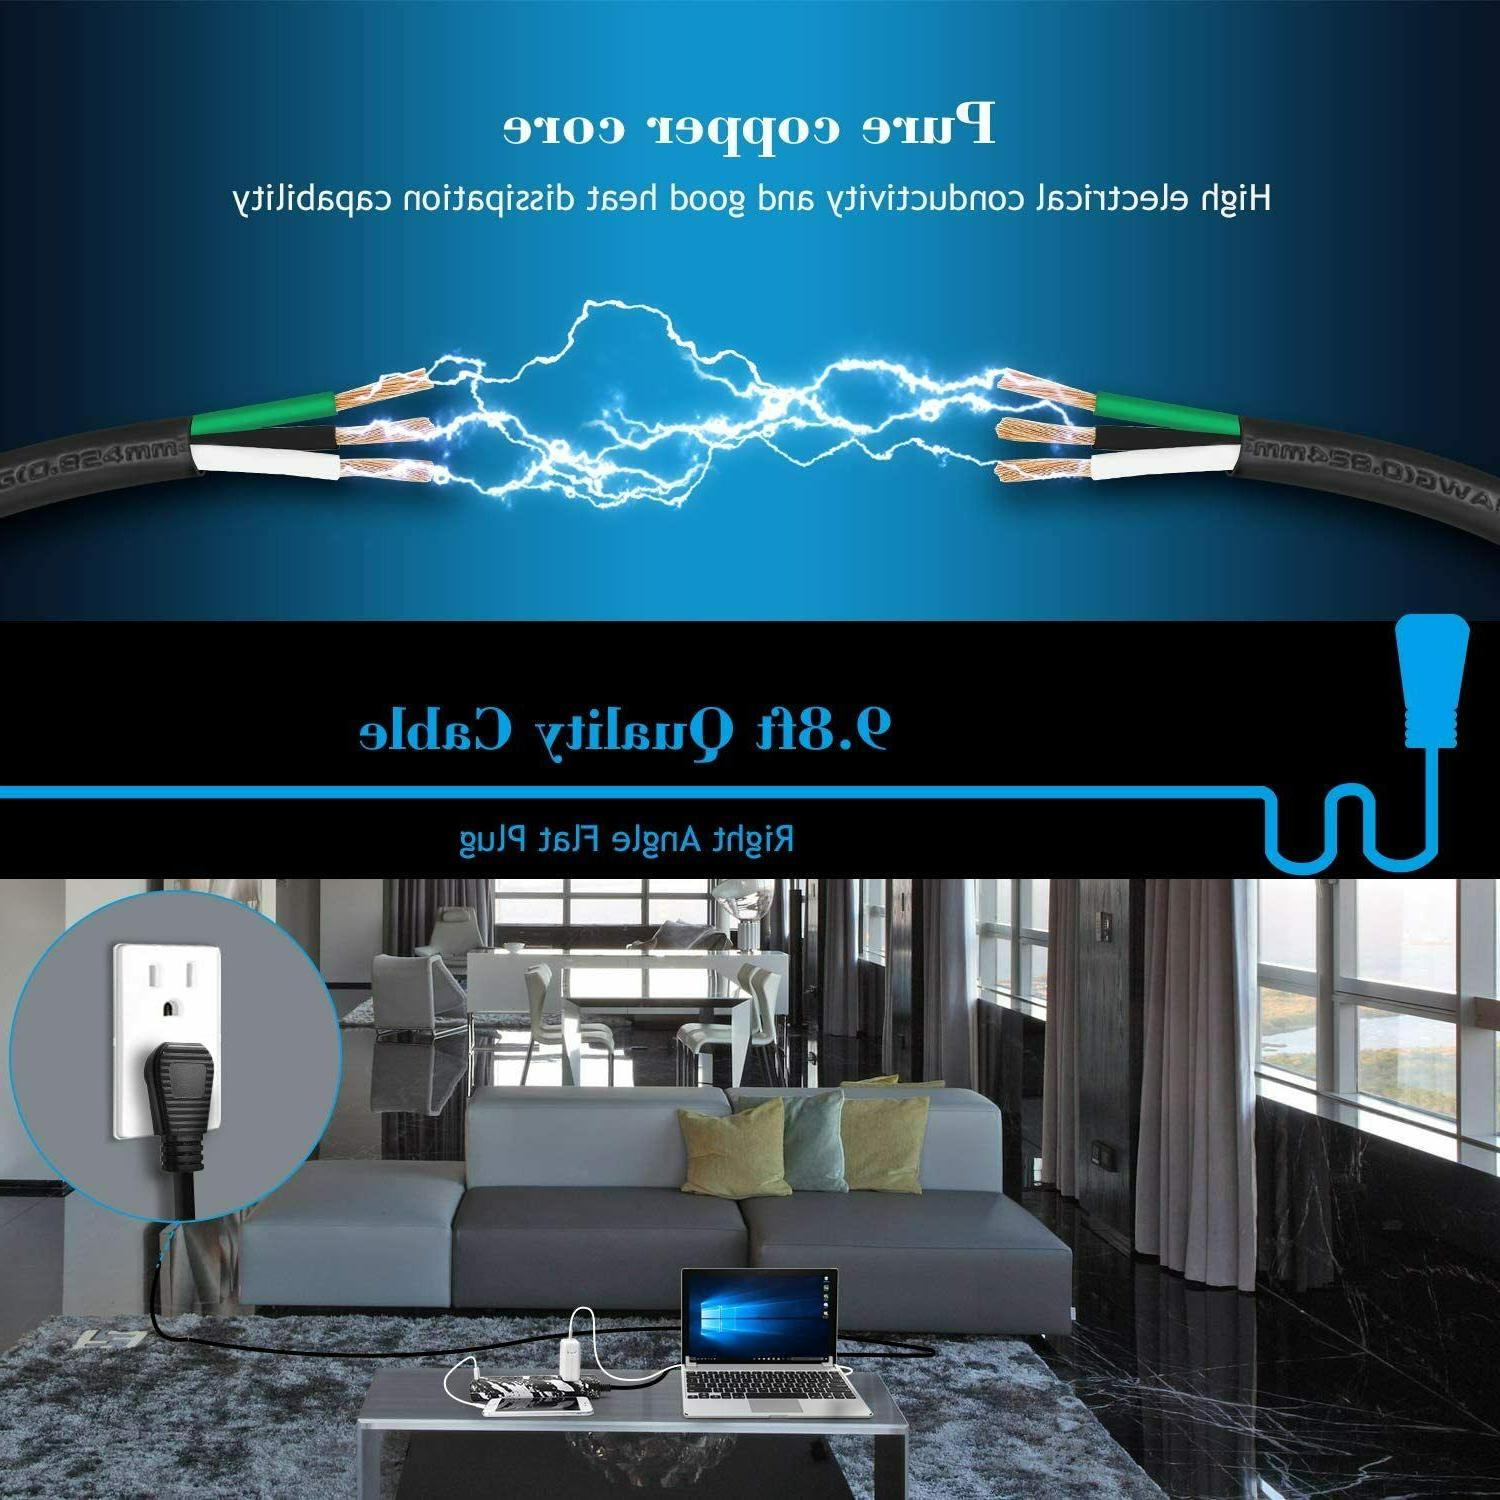 JACKYLED 10ft Cord Strip 3 Outlets Portable Electrical Power